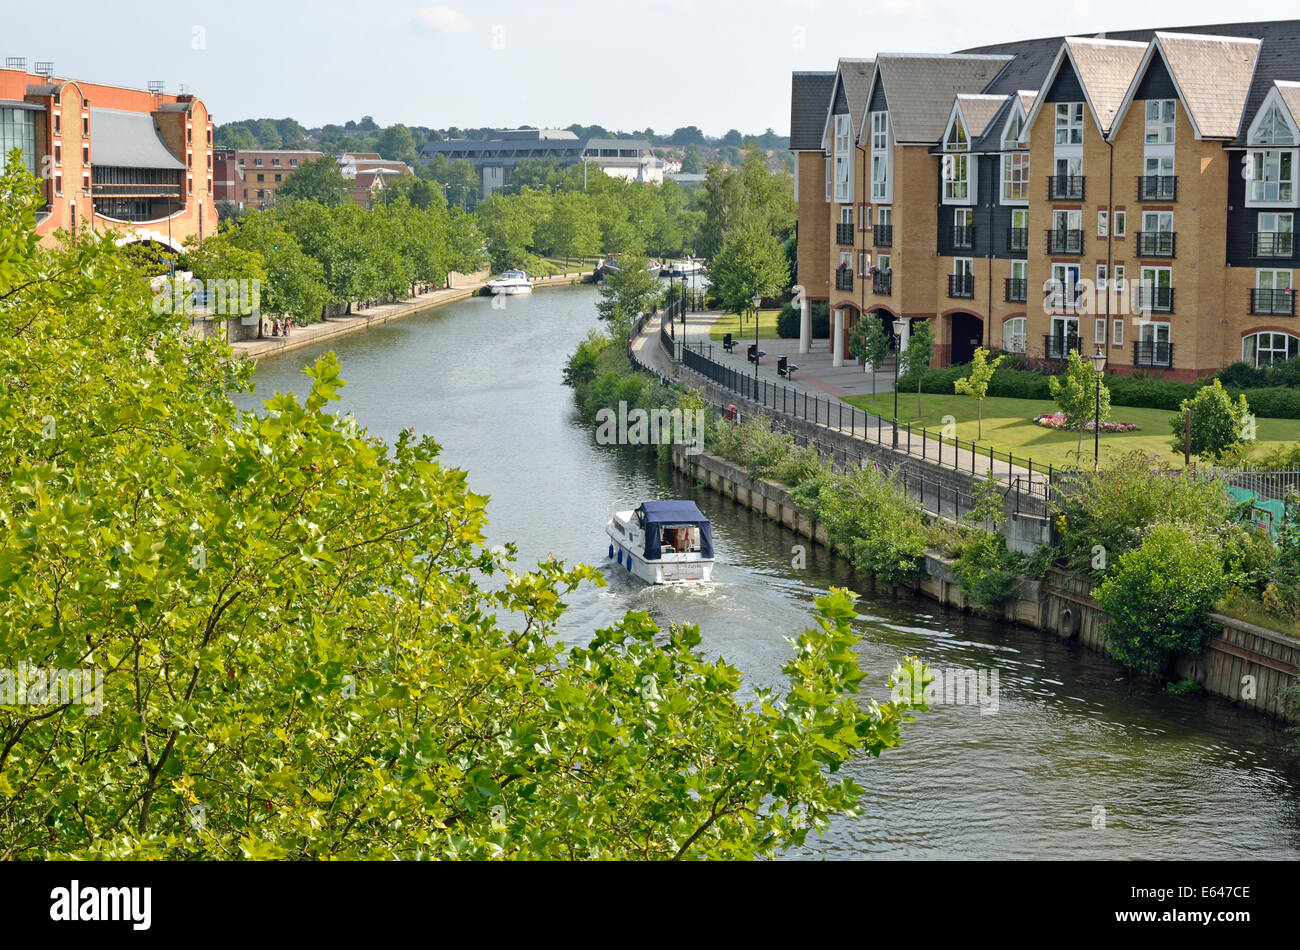 Maidstone, Kent, England. River Medway, new housing and pleasure boat in the town centre - Stock Image